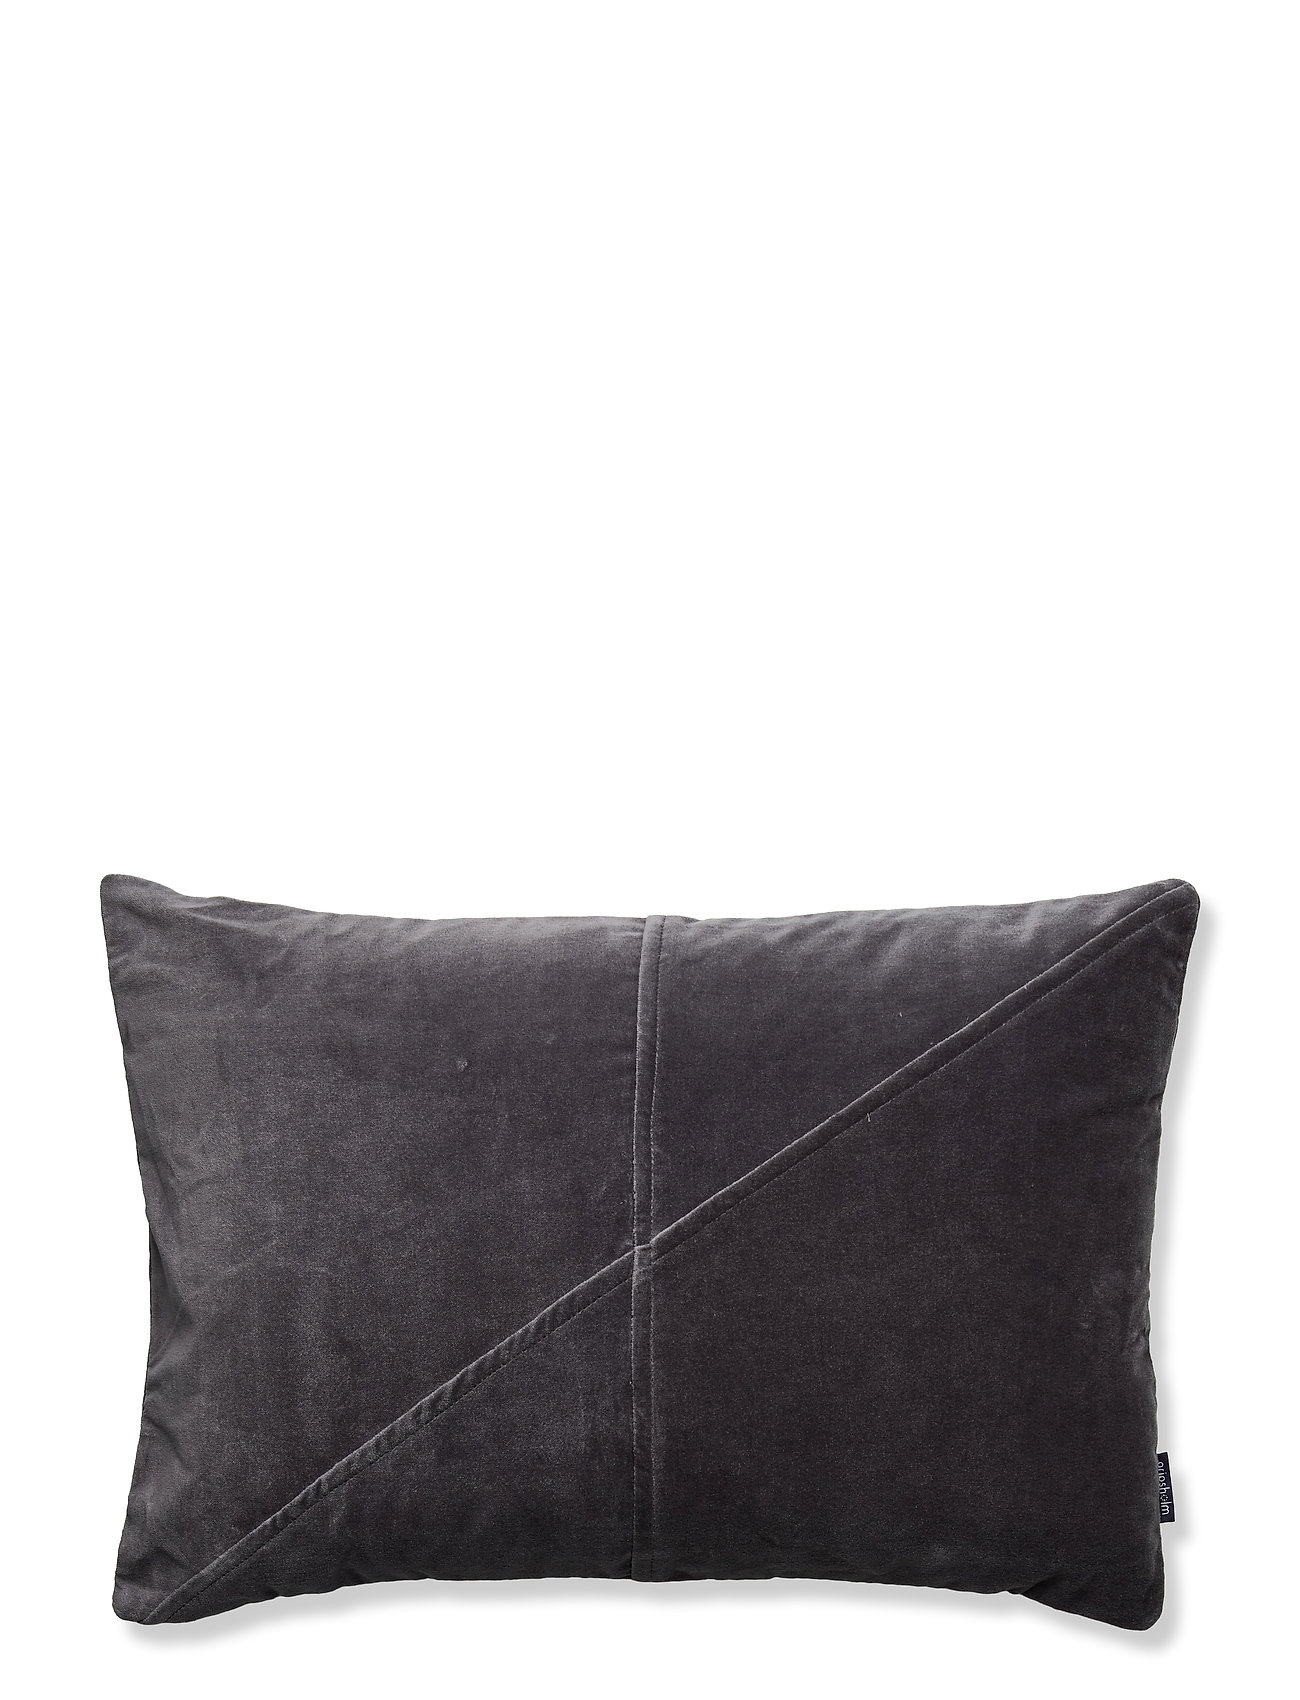 Gripsholm CUSHION COVER WALTER GOTS - ANTHRACITE